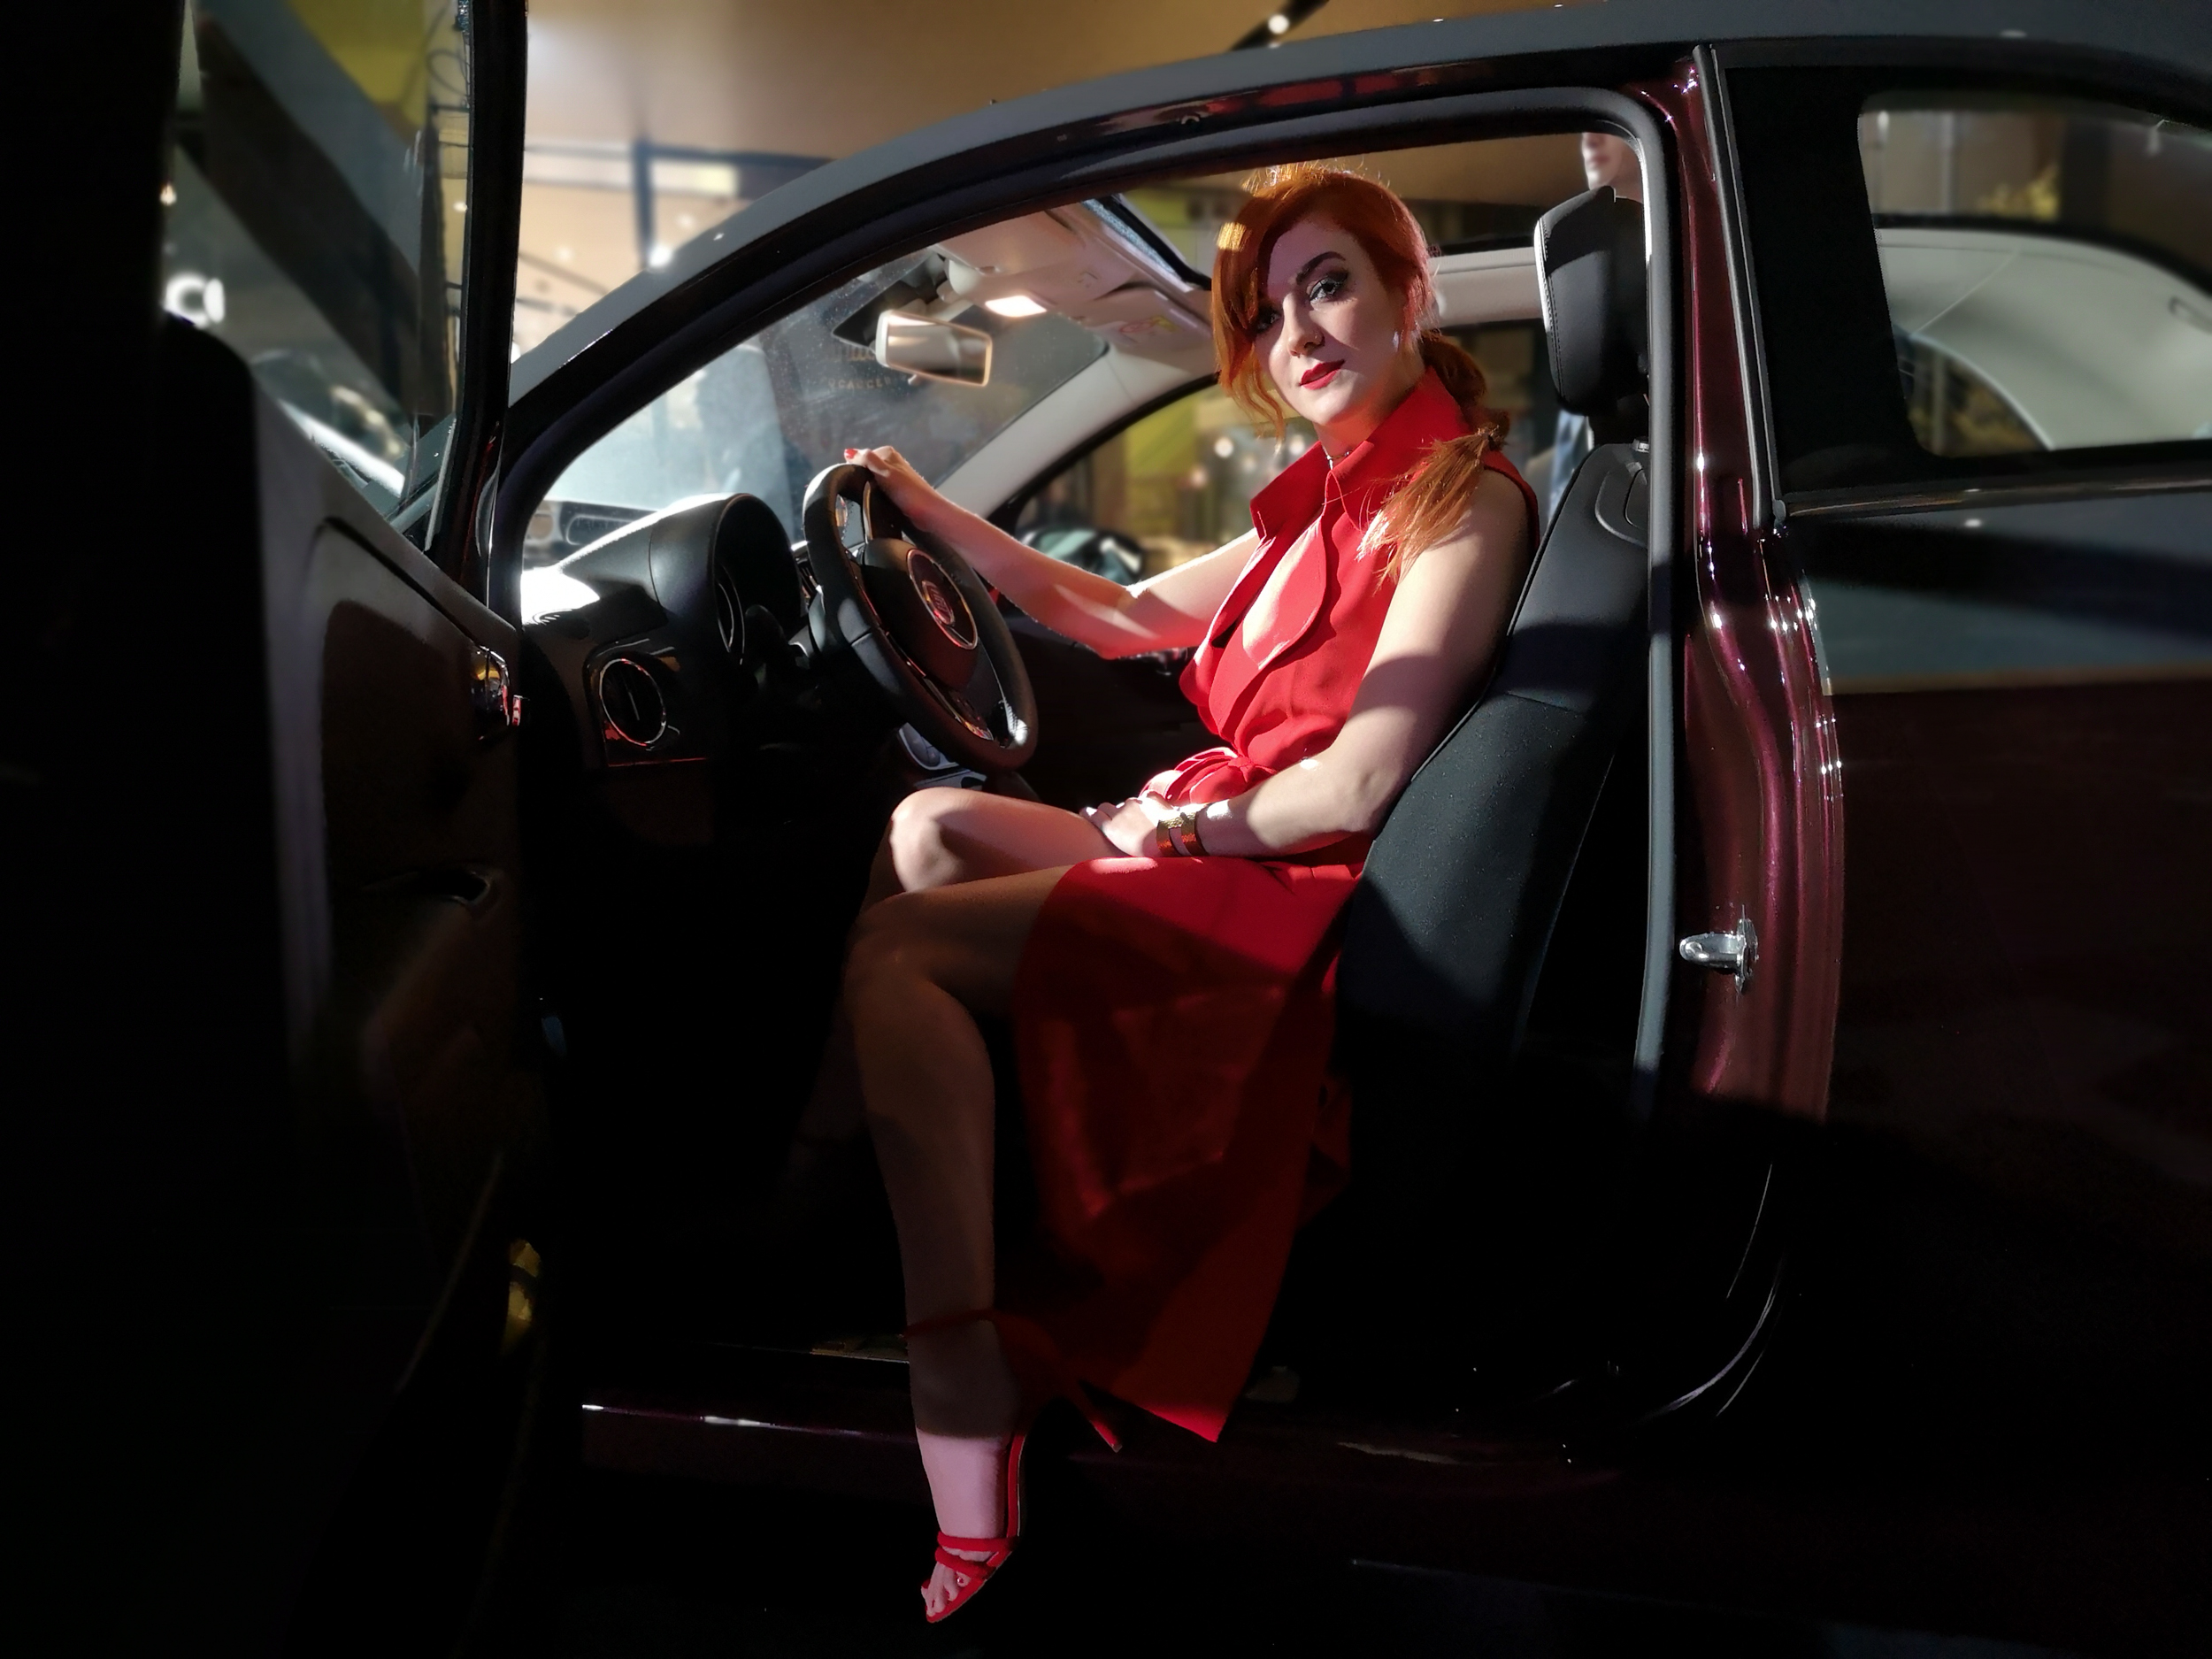 I'm sure there's probably some weird hashtag for redheads in cars… Here's my submission.